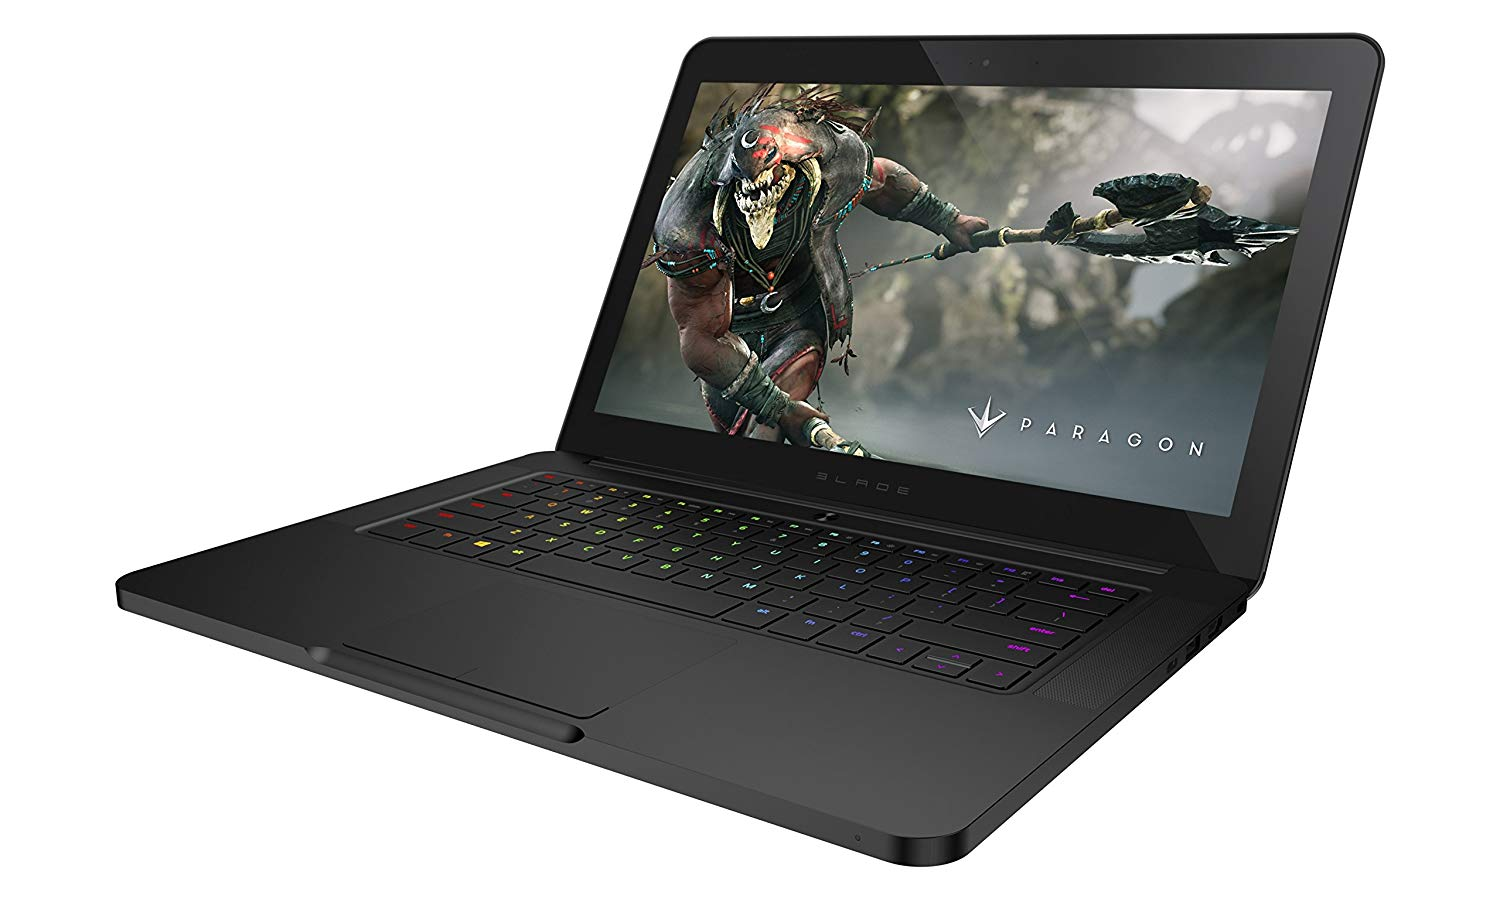 pc razer portable